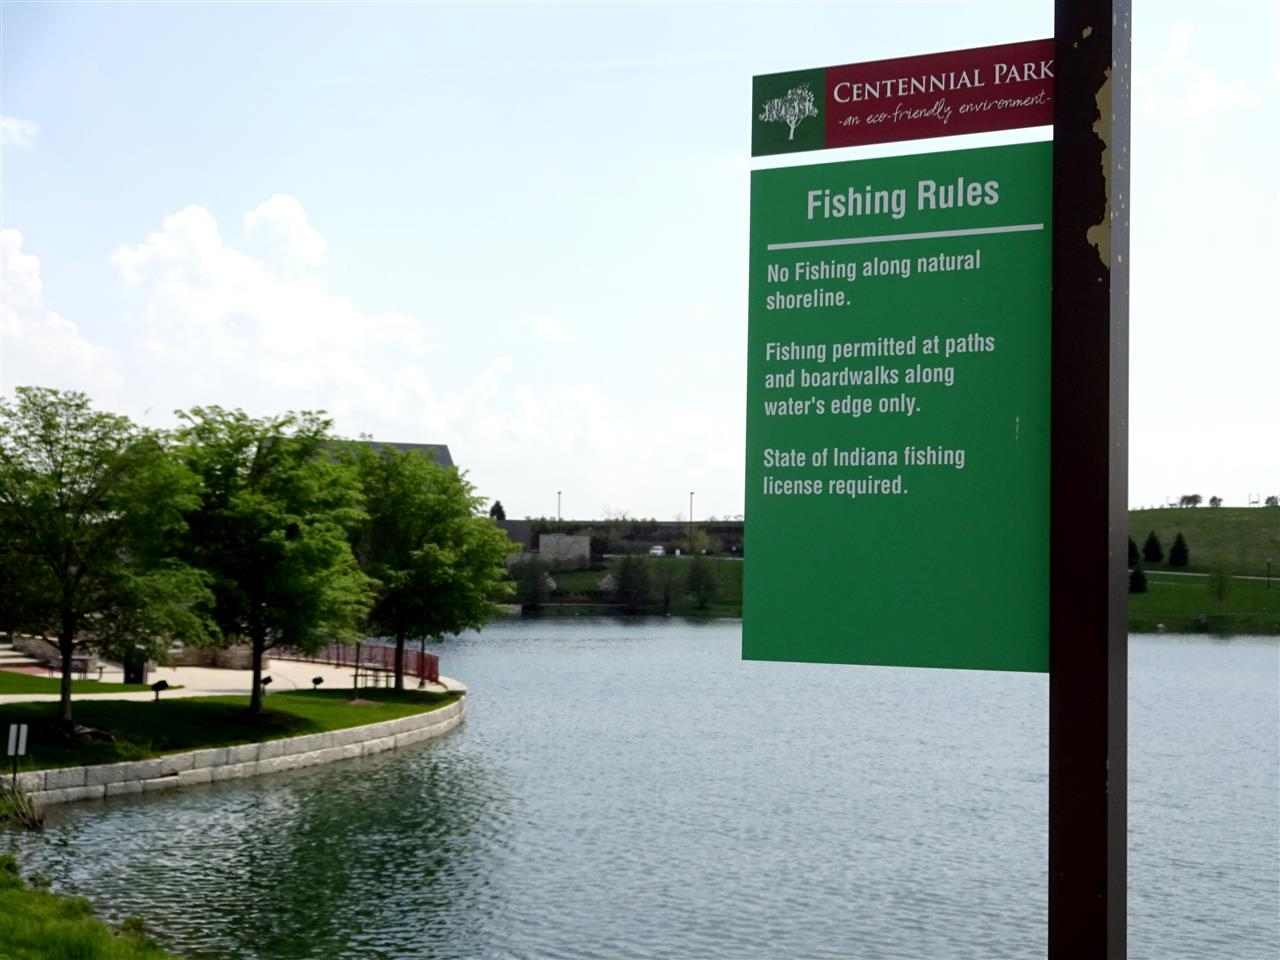 Centennial Park Fishing Pond in Munster, Indiana